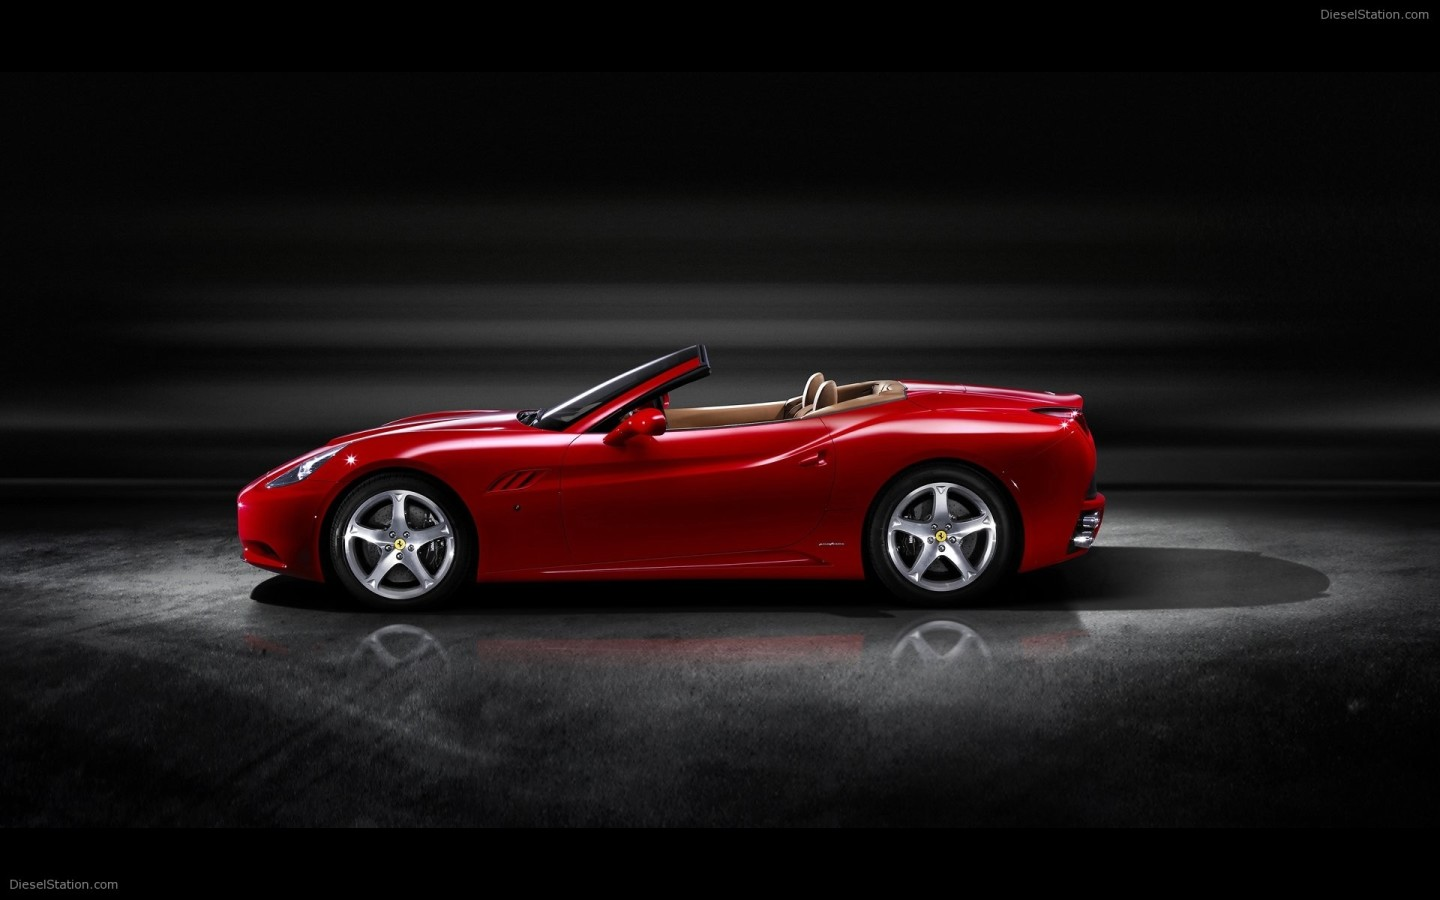 Ferrari Car Wallpapers Cars Exotic Widescreen California Wallpaper 1440x900